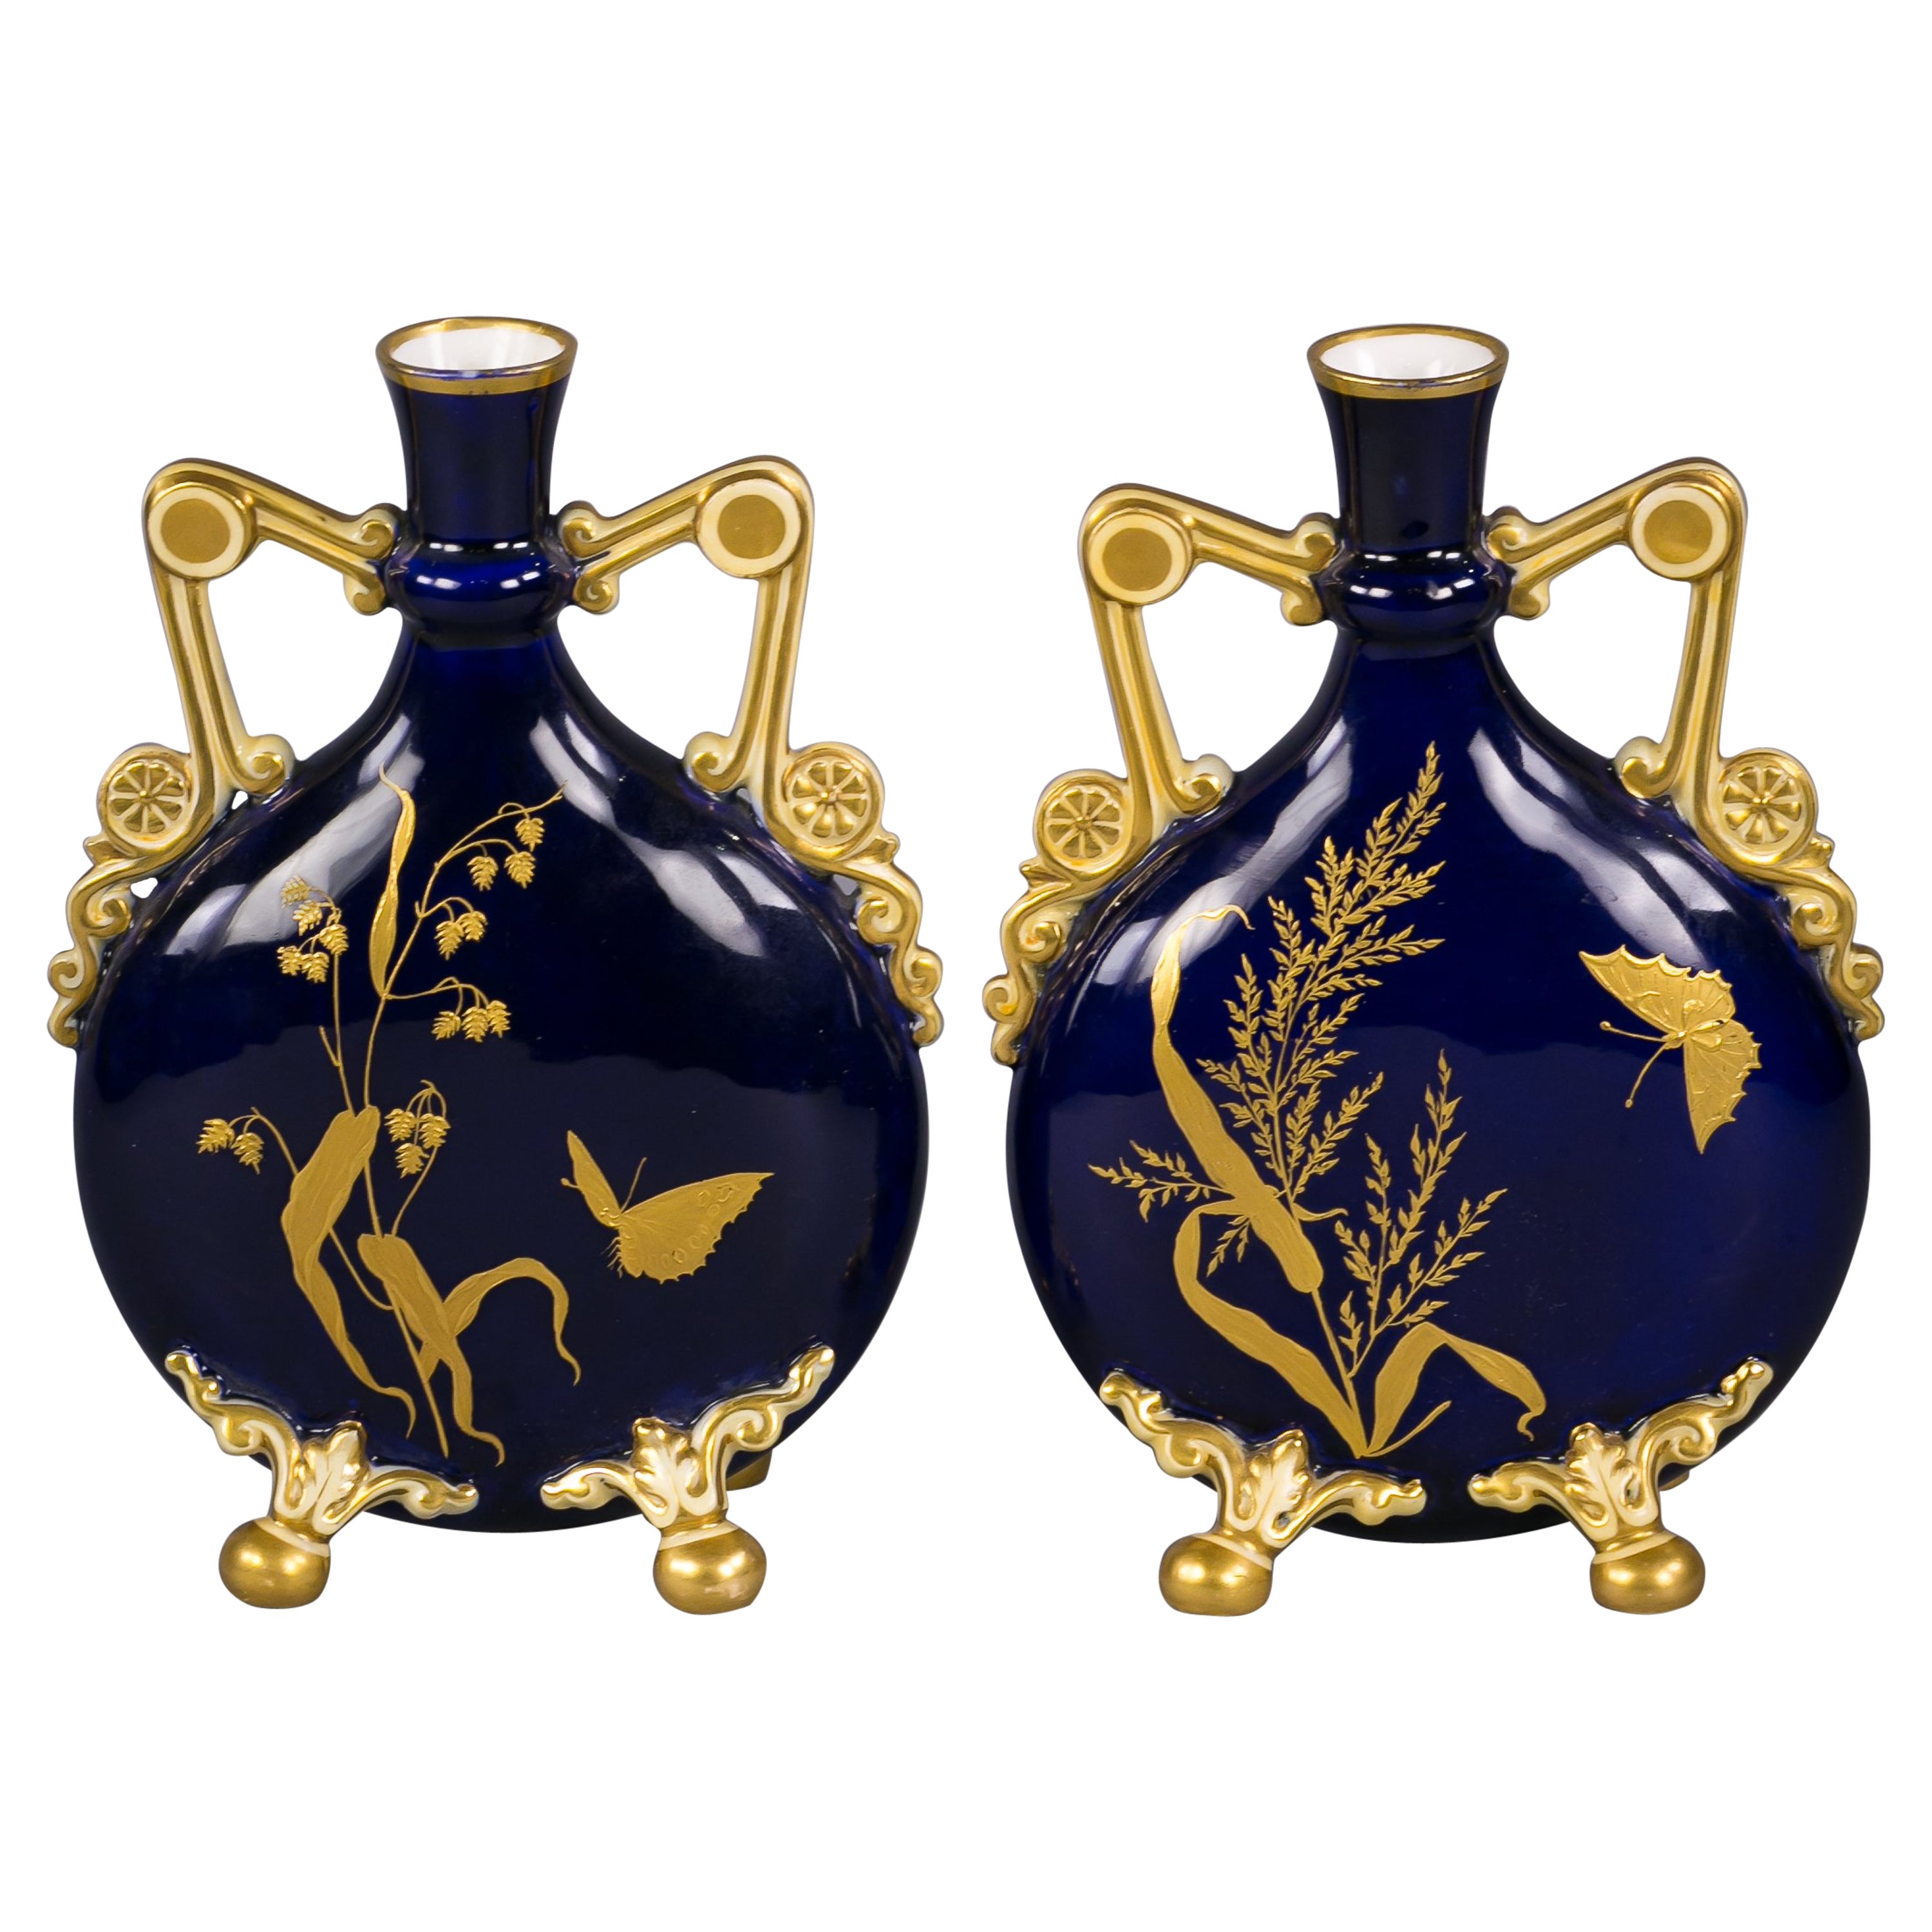 Pair of English Porcelain Two-Handled Moon Flask Vases, circa 1880